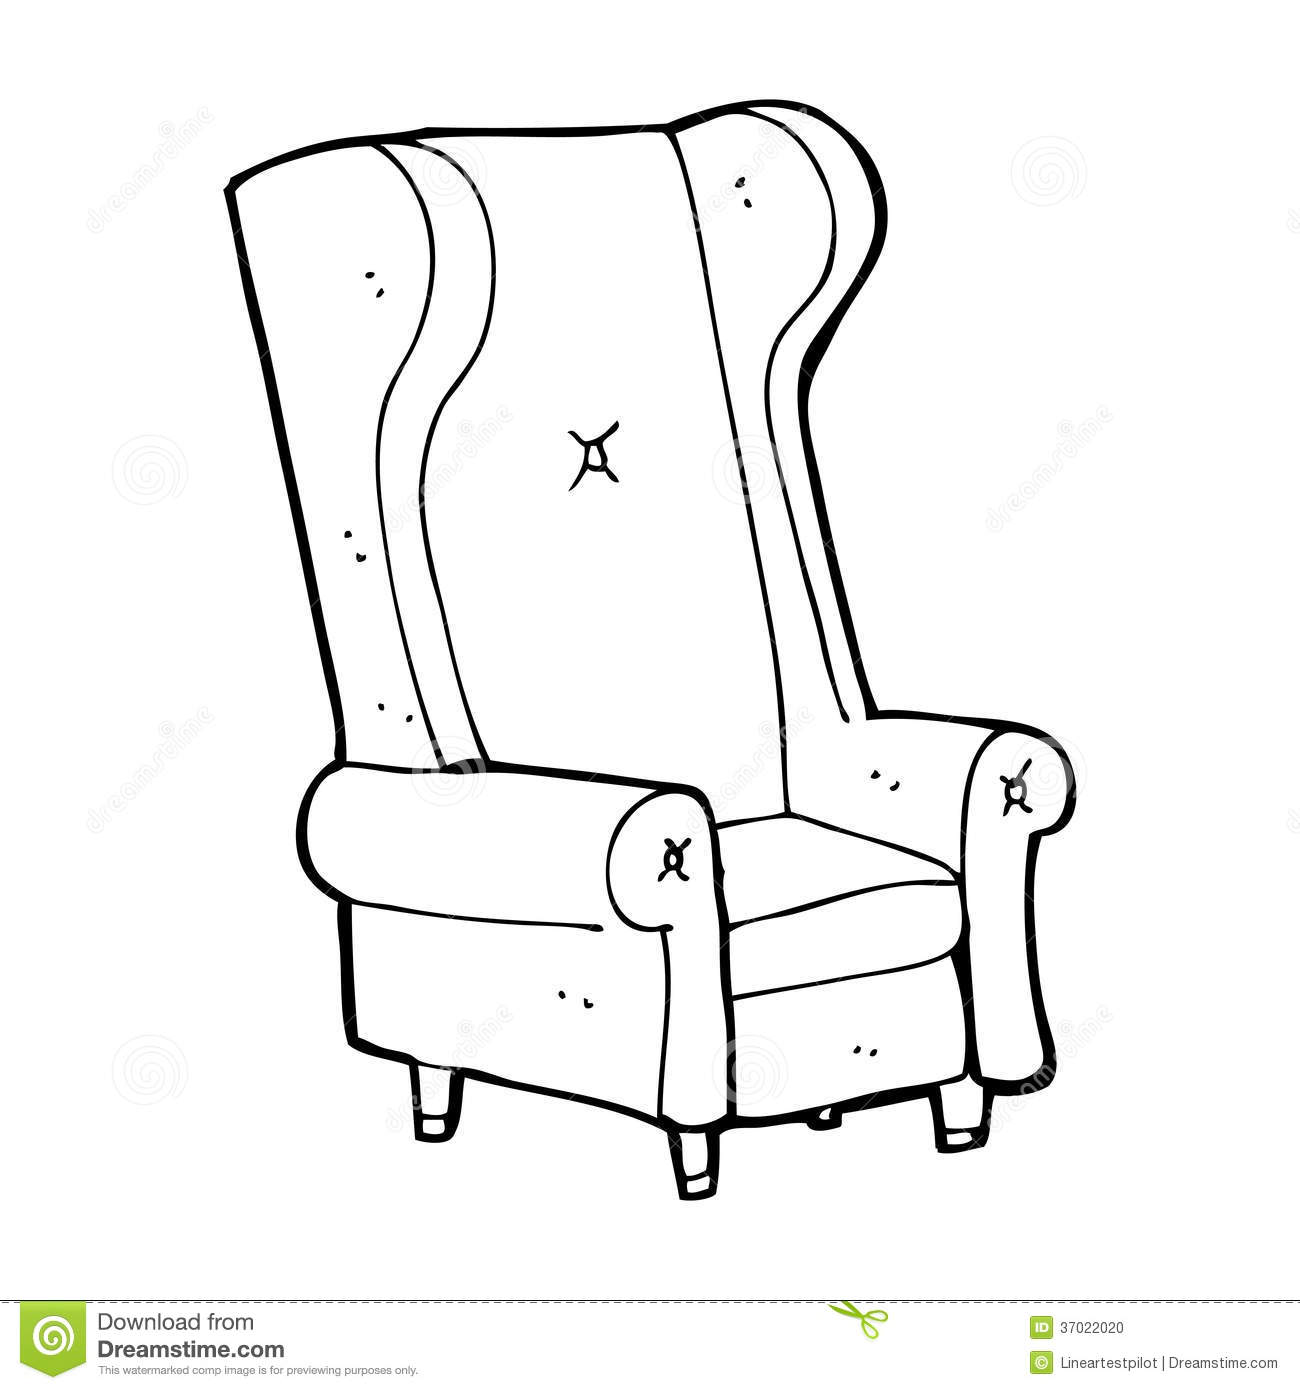 Black and white chair drawing - Stock Photo Cartoon Old Chair Black White Line Retro Style Vector Available Image37022020 Jpg 1300x1390 Cartoon